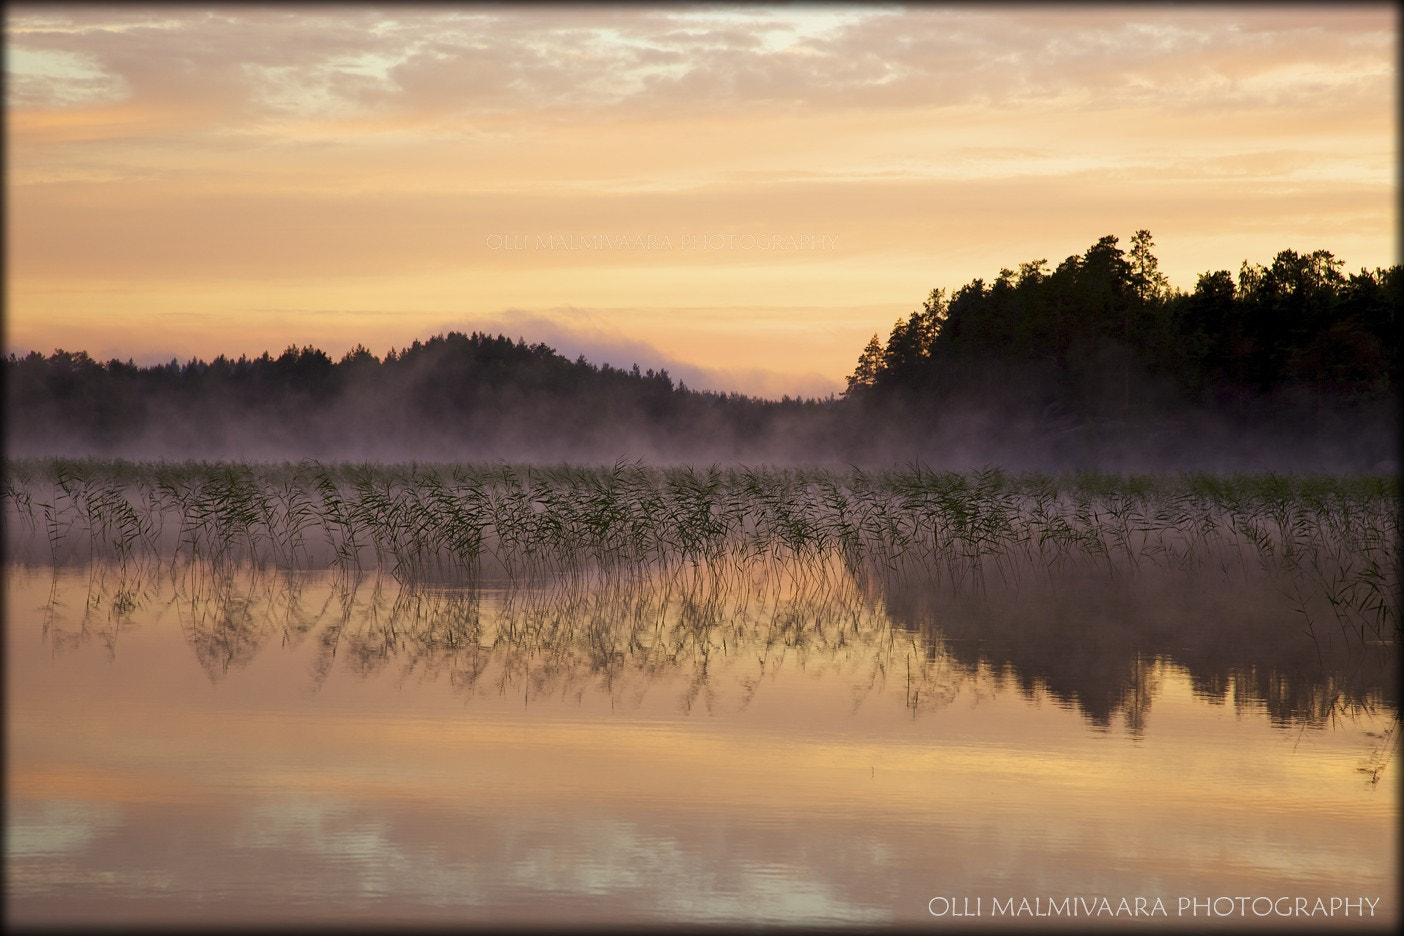 Photograph Summer morning by the lake by Olli Malmivaara on 500px